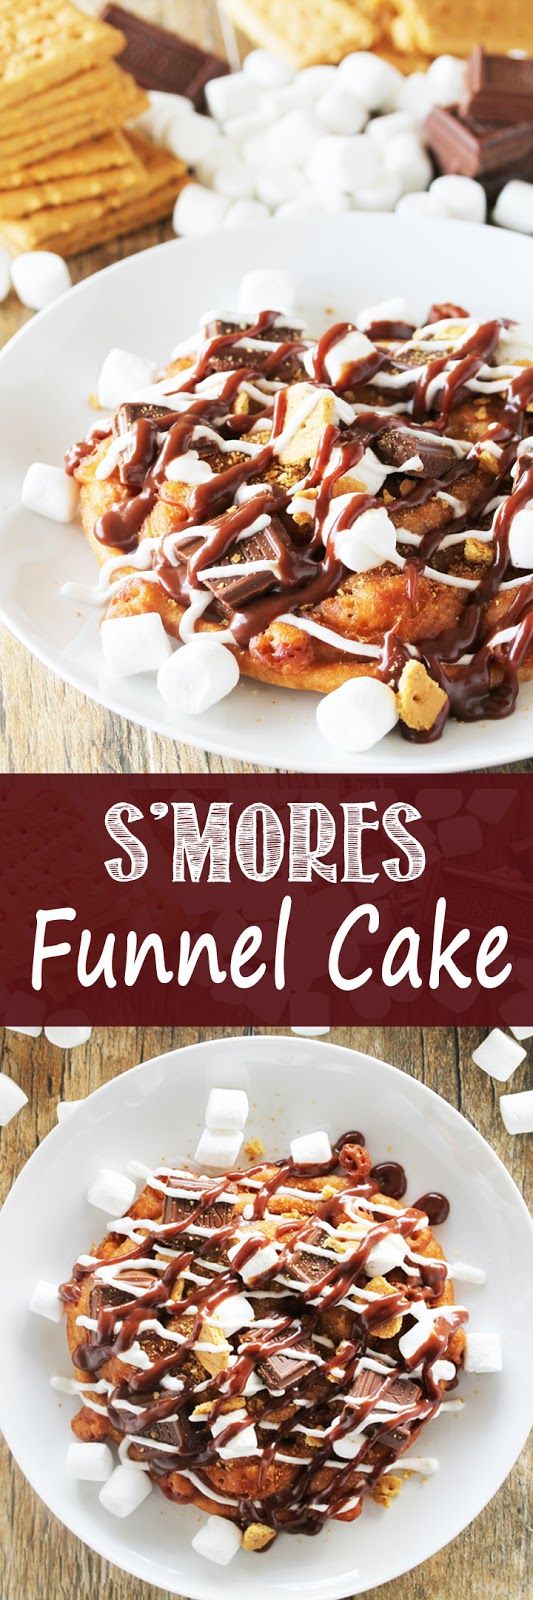 S'mores Funnel Cake